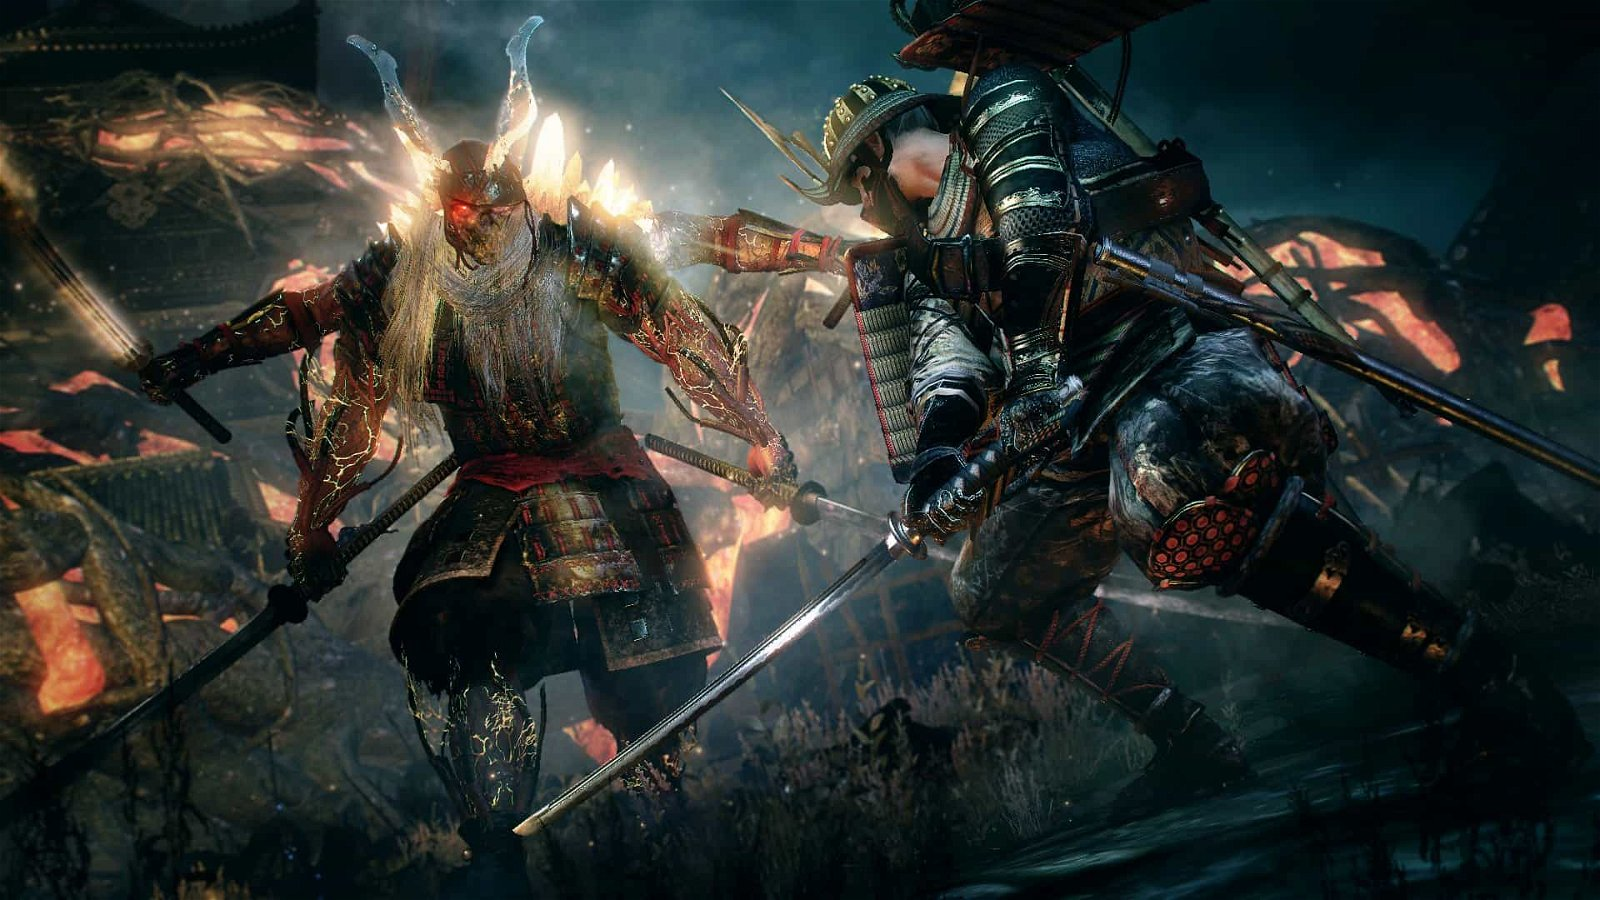 Nioh 2 Closed Alpha Test Announced With Gameplay Reveal Trailer 1